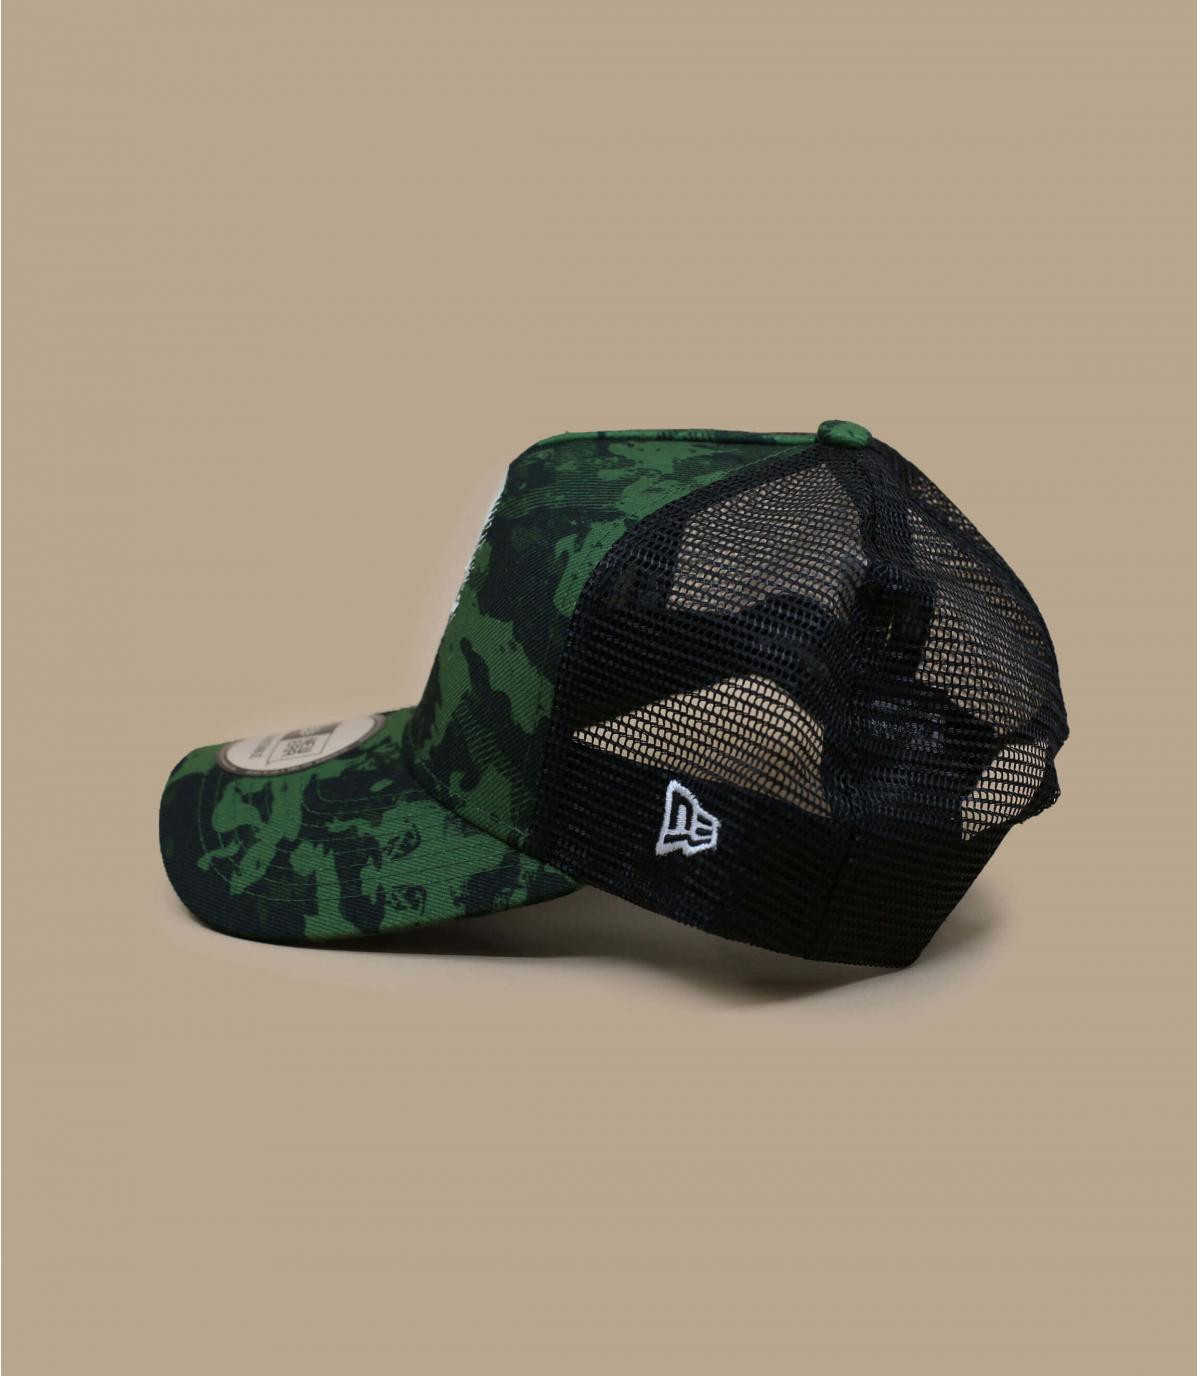 Détails Trucker Ghost Recon Breakpoint - image 3